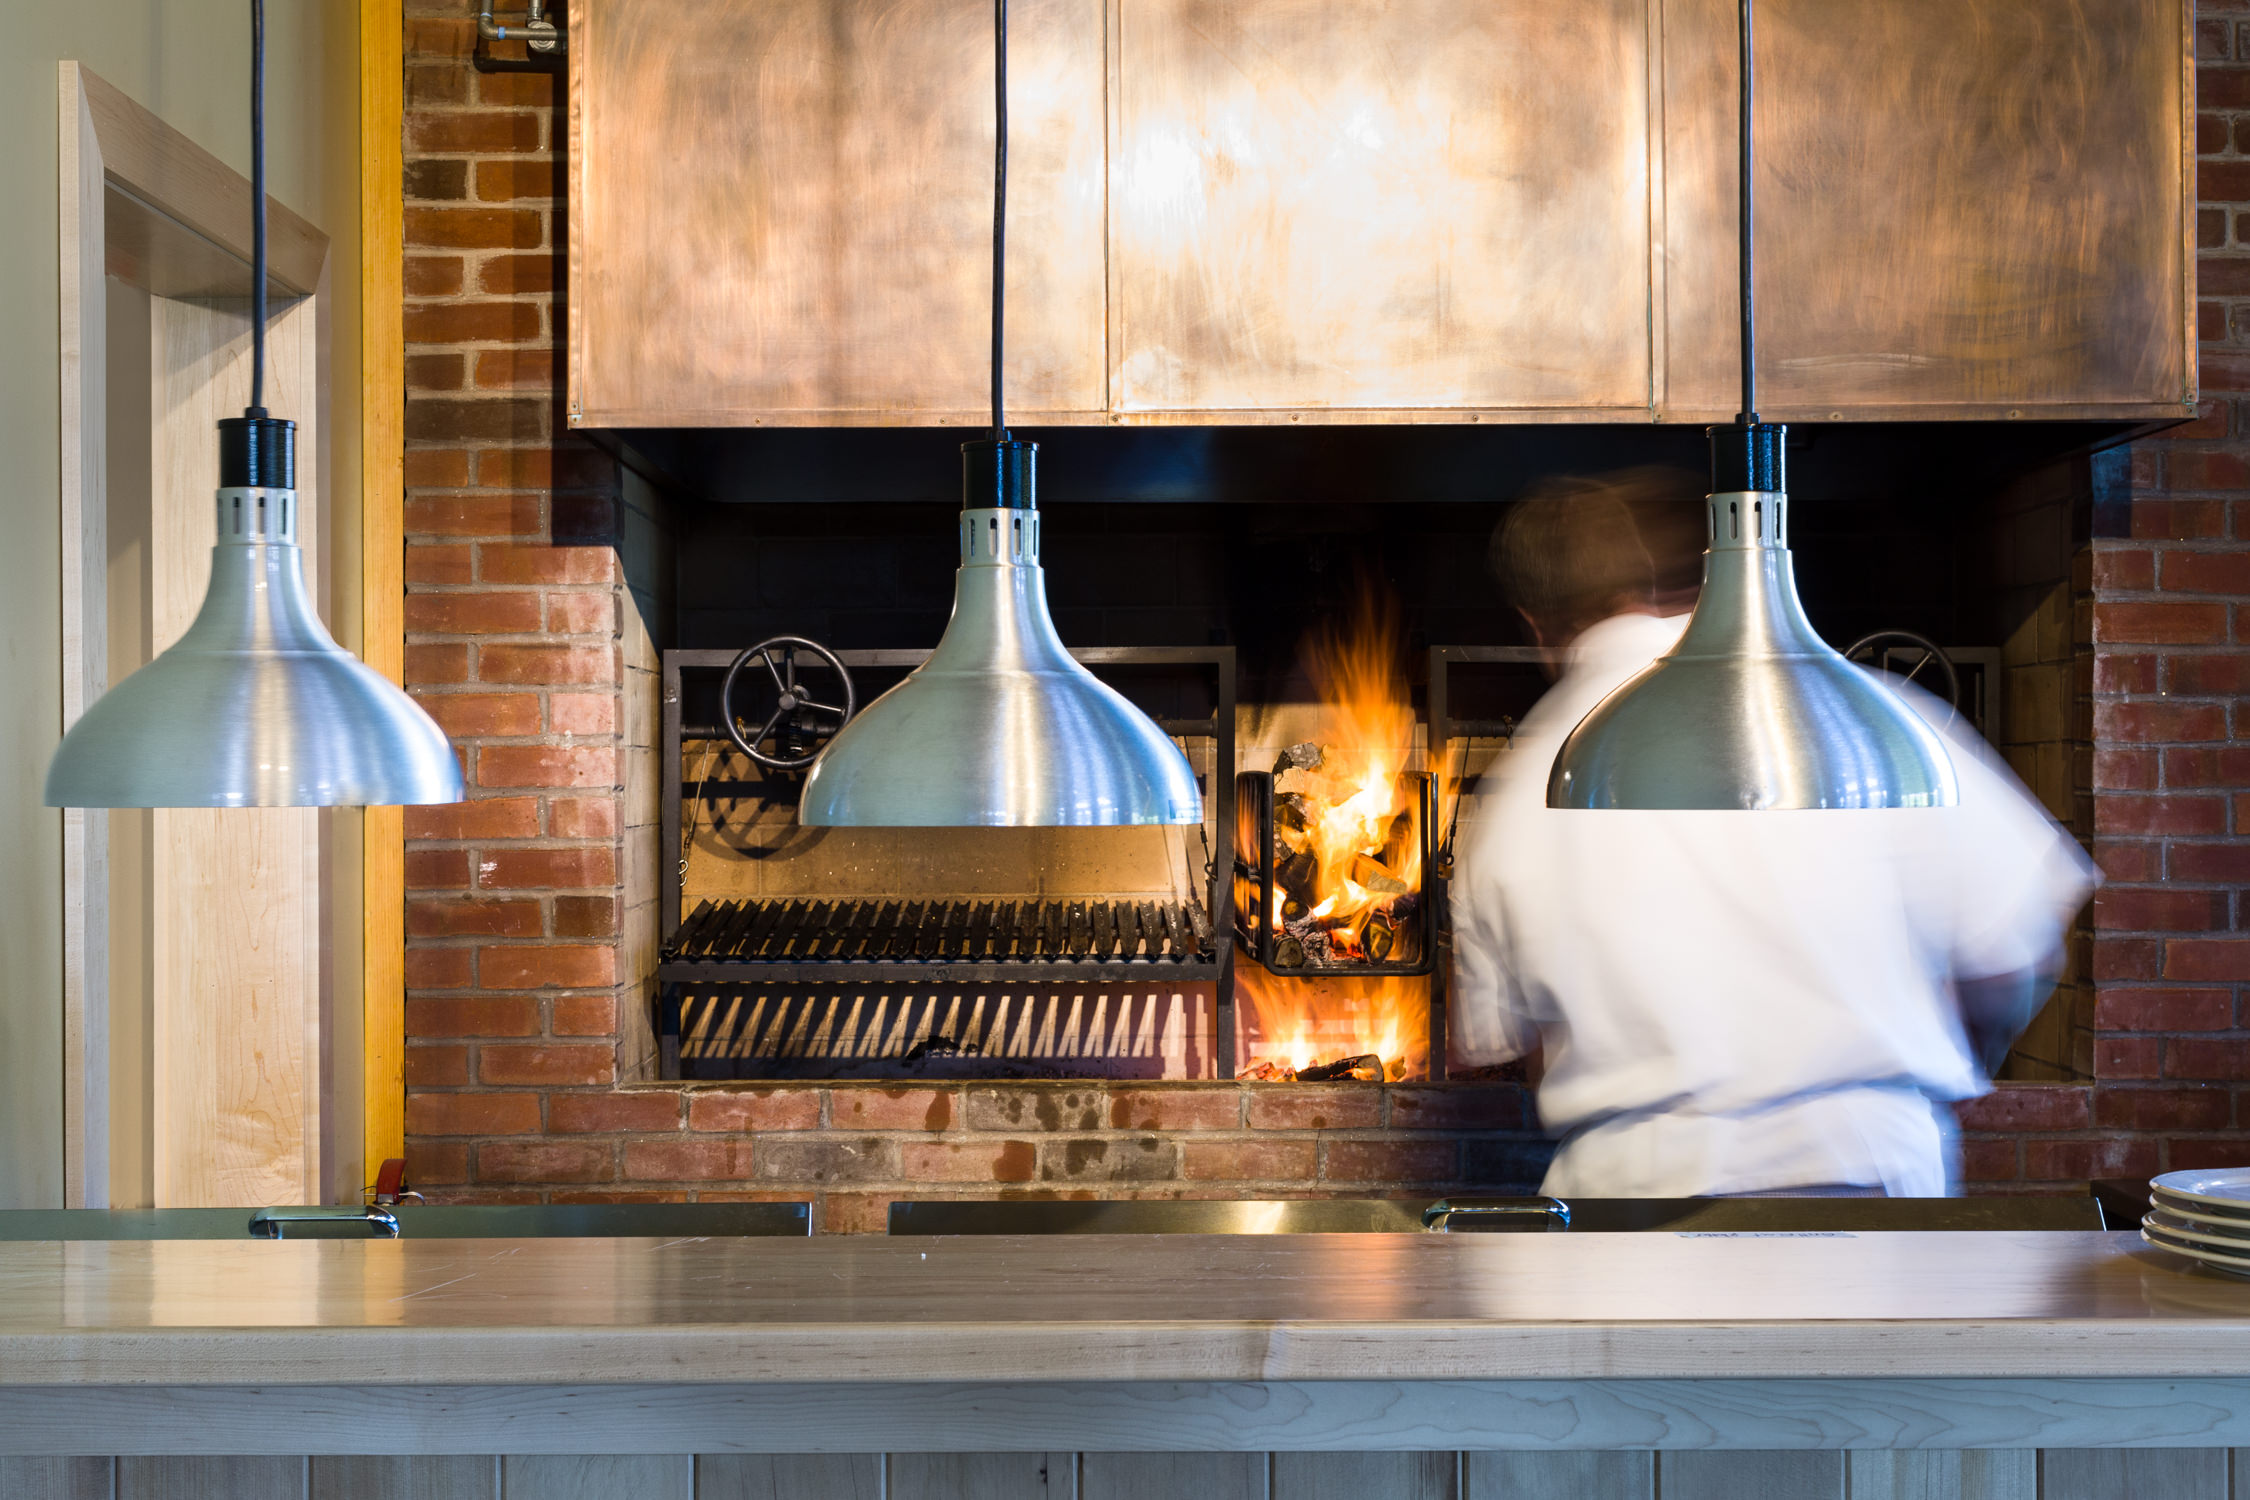 A chef preps the fire in a wood fired oven at the von Trapp Brewery Bierhall in Stowe Vermont in a photo by commercial photographer Stina Booth